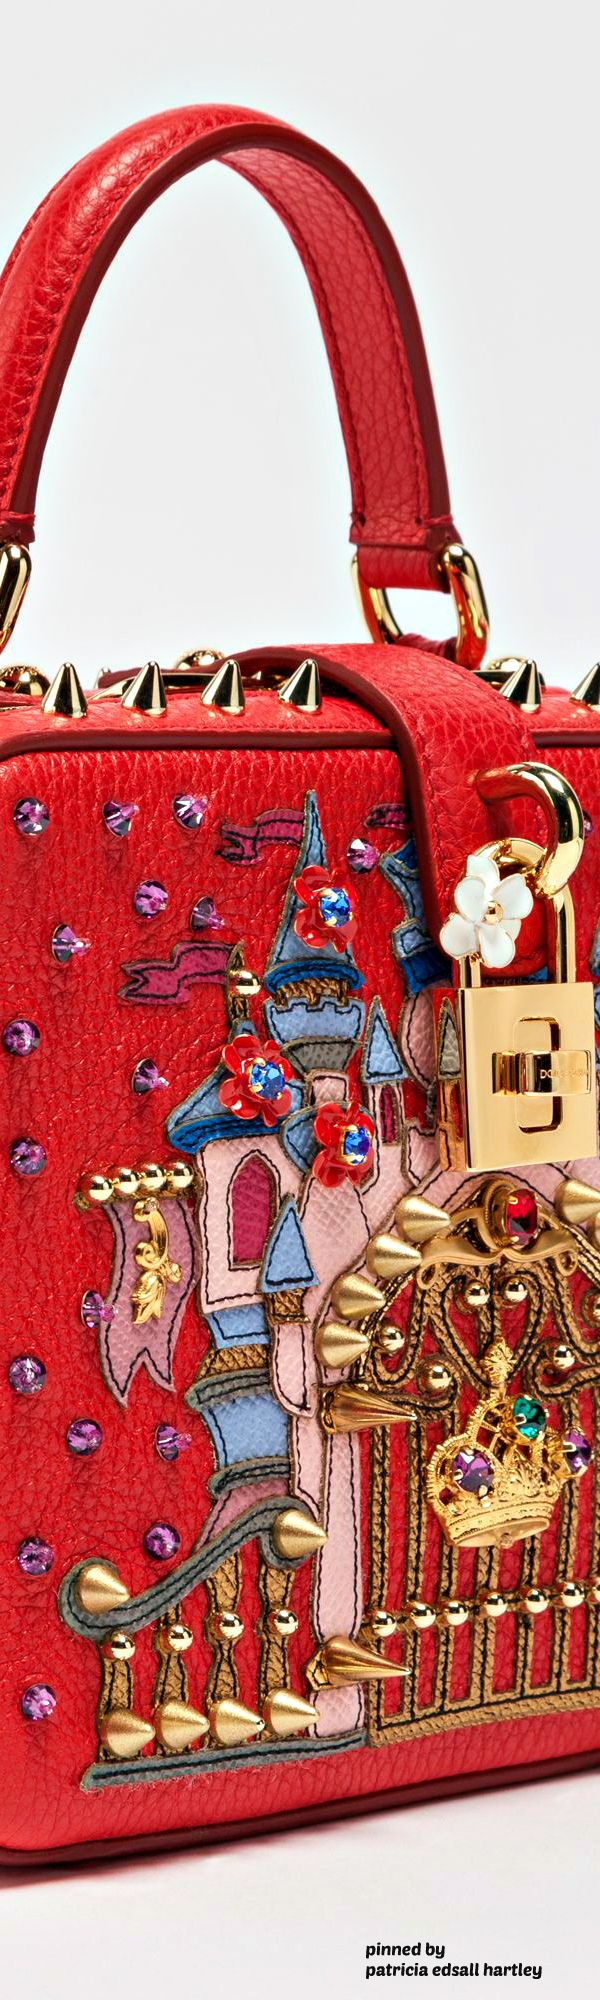 DOLCE & GABBANA - DOLCE SOFT BAG IN DRUMMED CALFSKIN WITH APPLIQUÉS - 2017